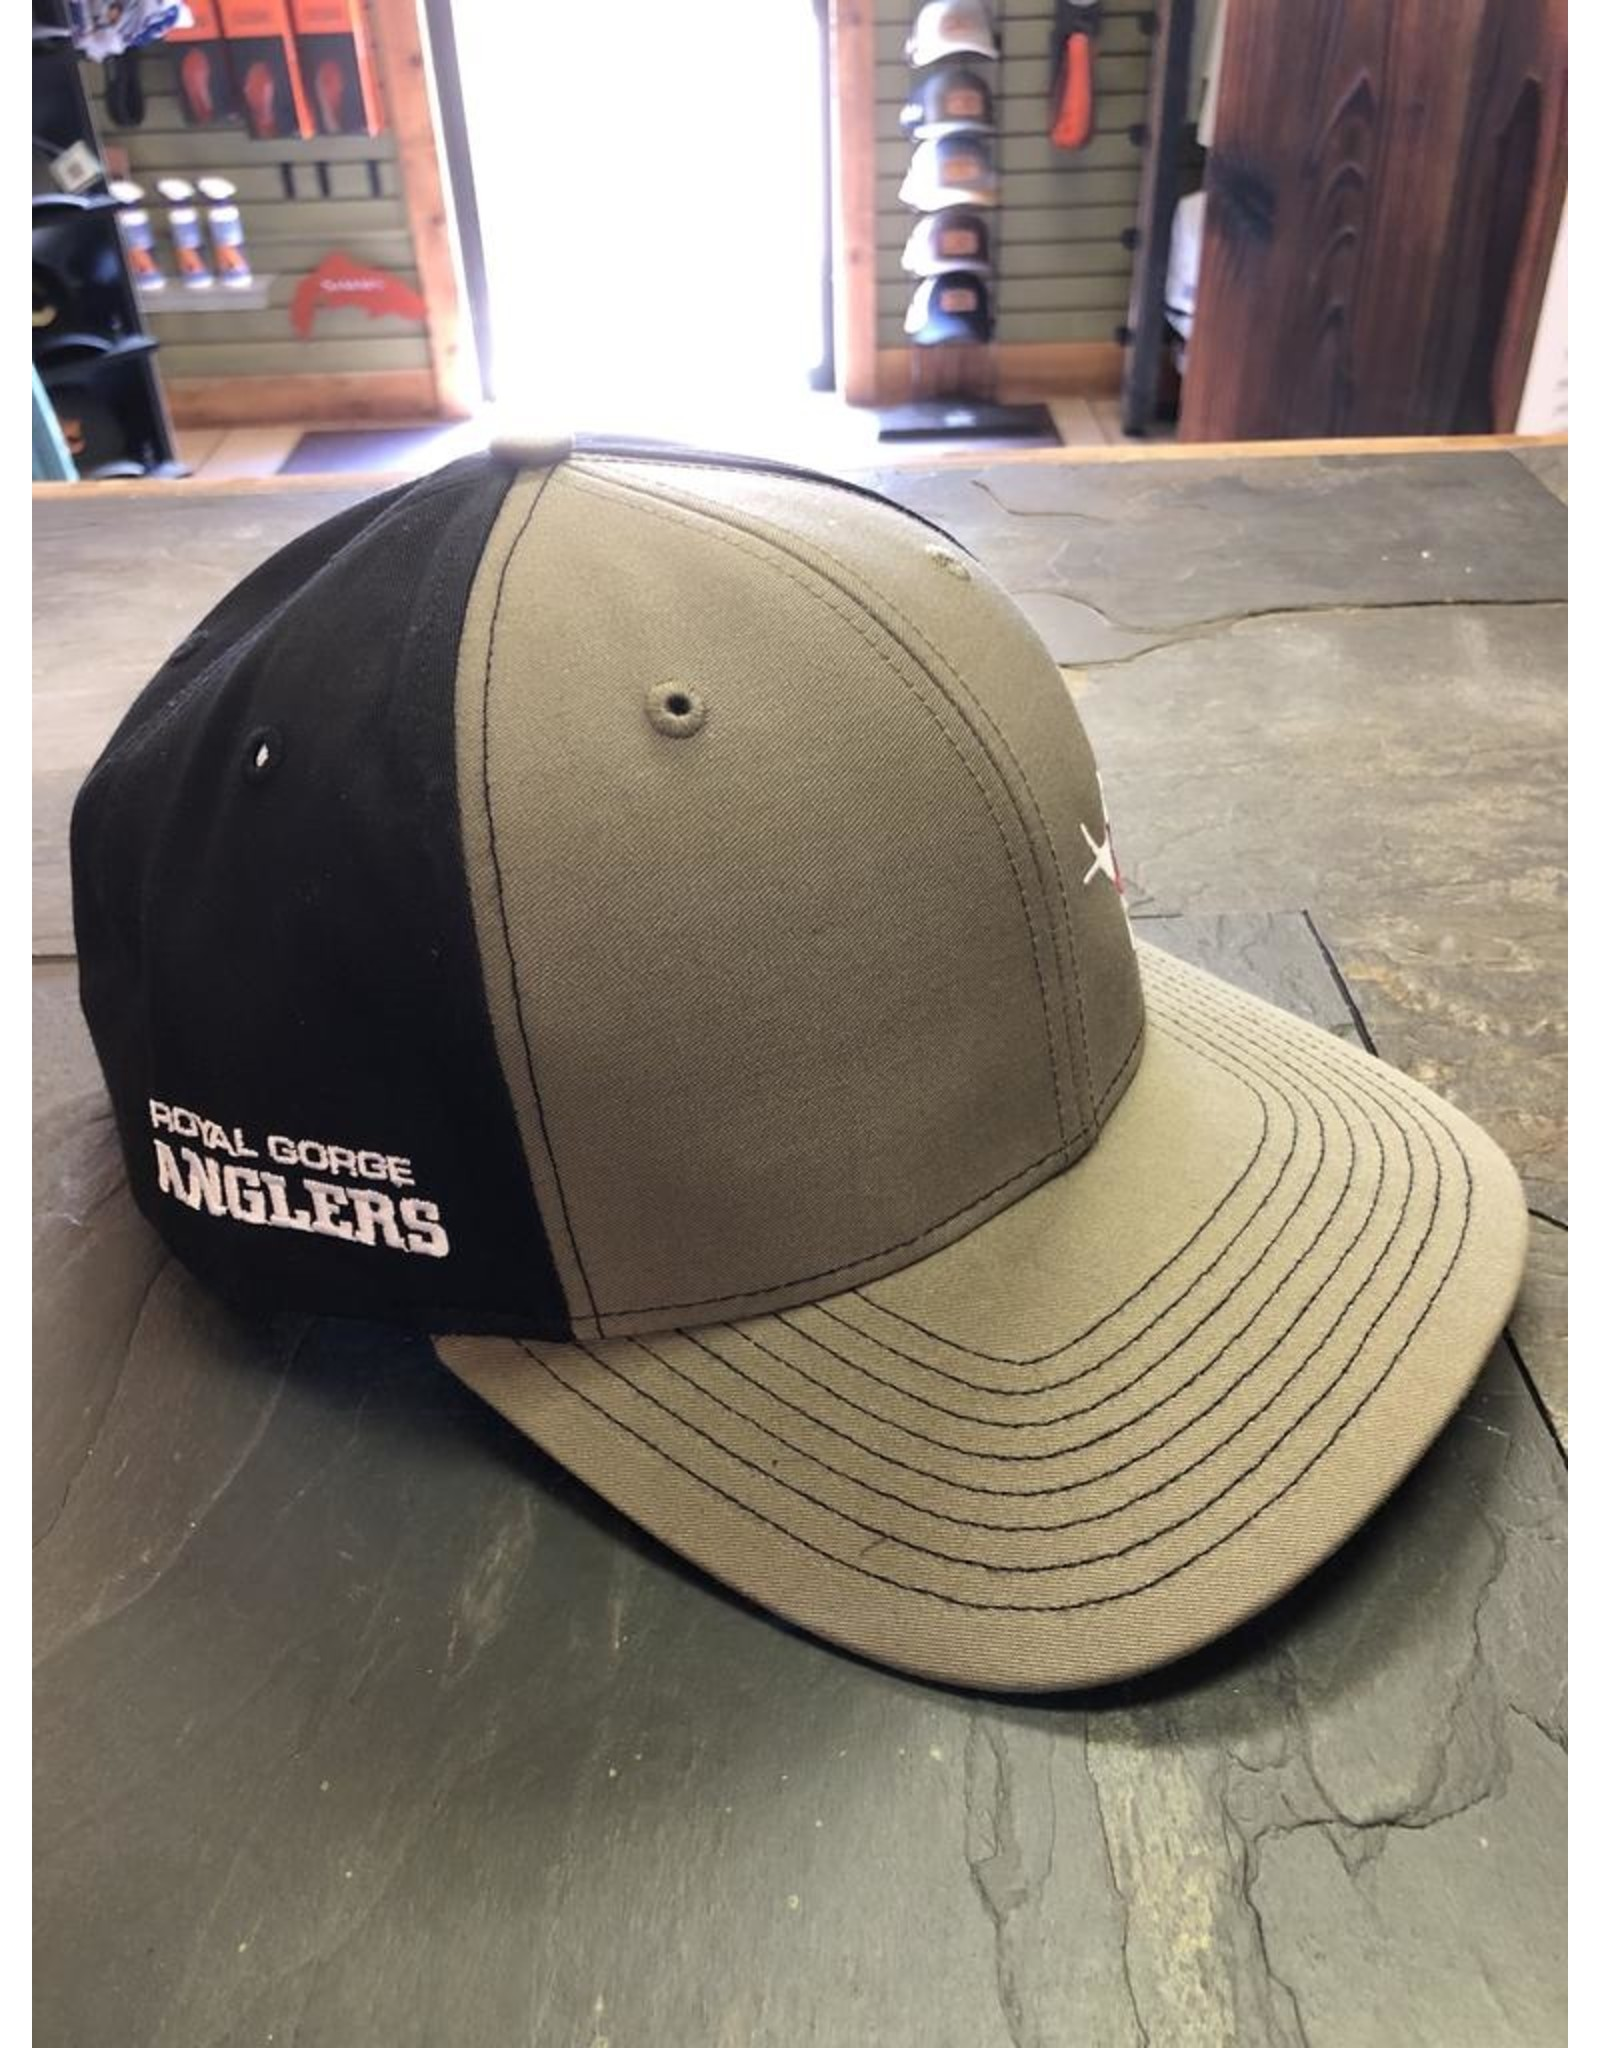 Feast your eyes on the coolest twill hat to ever hit the water!